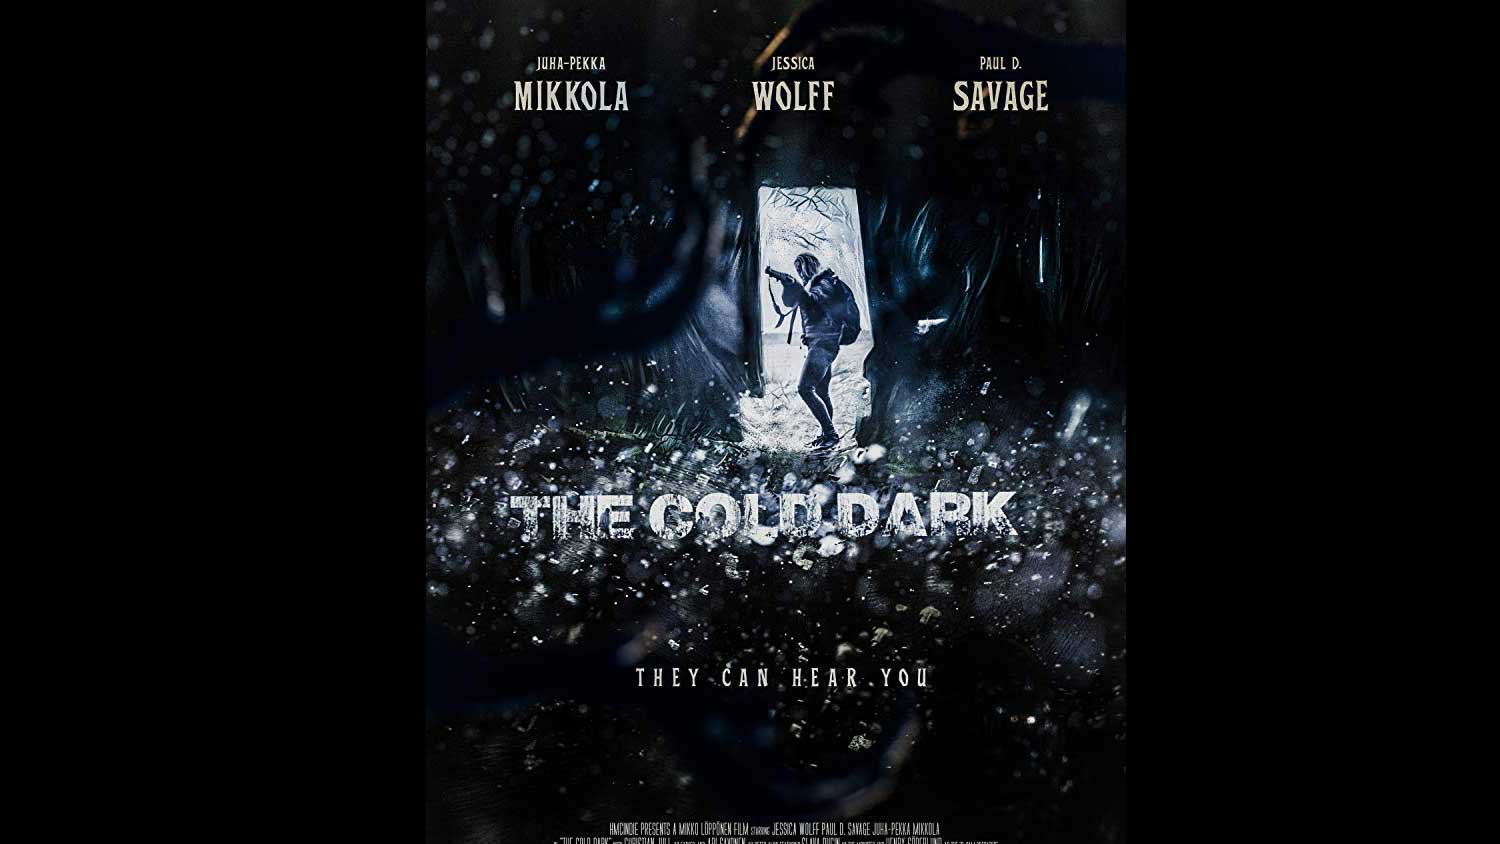 The Cold Dark Review - OC Movie Reviews - Movie Reviews, Movie News, Documentary Reviews, Short Films, Short Film Reviews, Trailers, Movie Trailers, Interviews, film reviews, film news, hollywood, indie films, documentaries